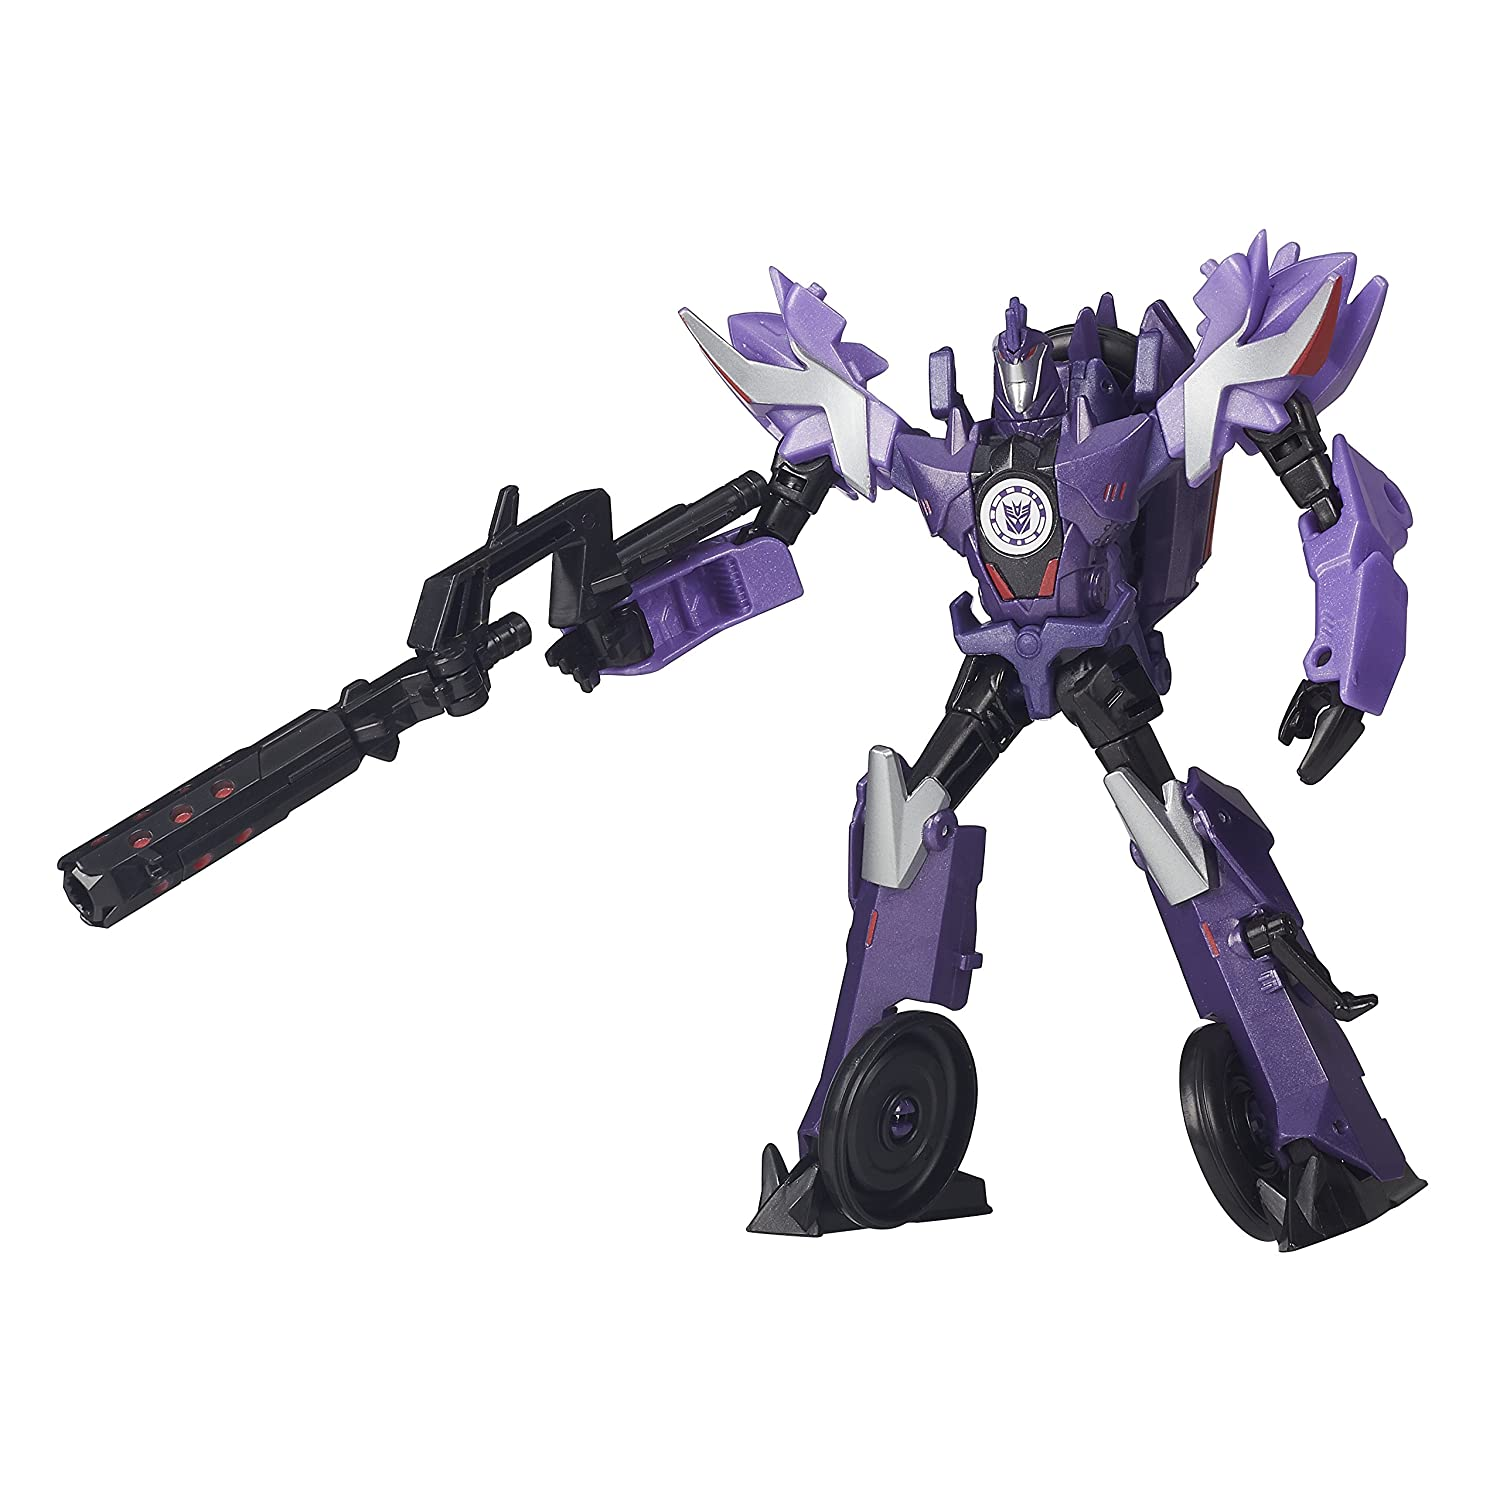 Hasbro Transformers B4686ES0 - Robots In Disguise Warriors Klasse - Decepticon Fracture, Actionfigur B4686EL20